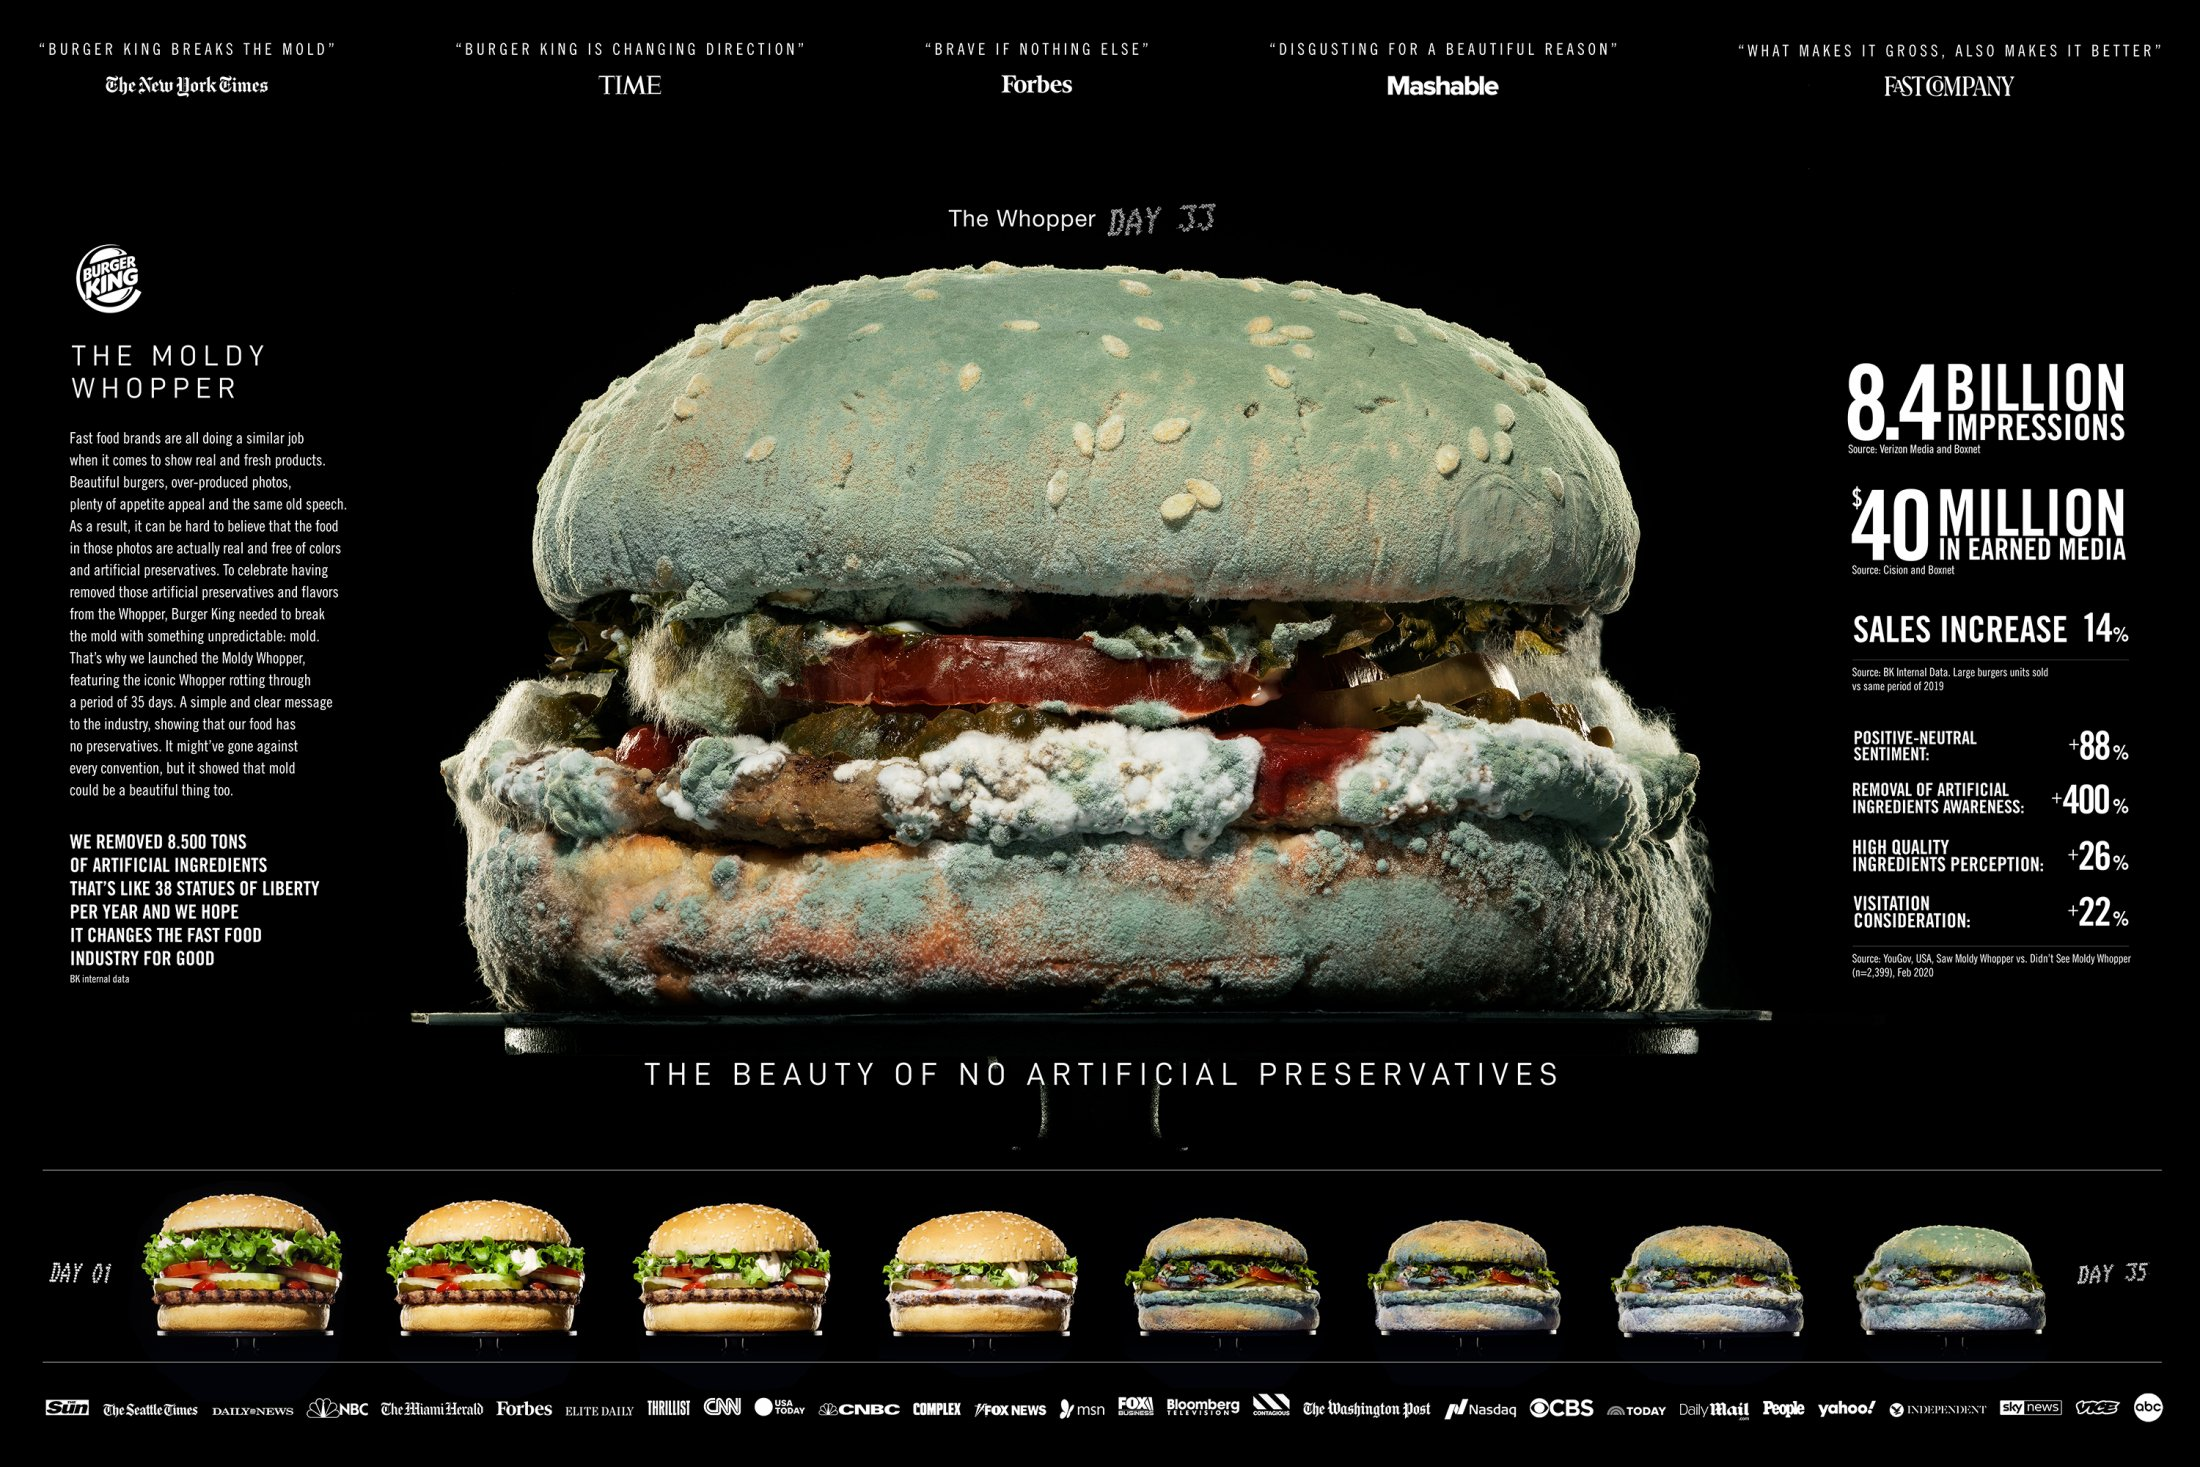 Image Media for BK Moldy Whopper